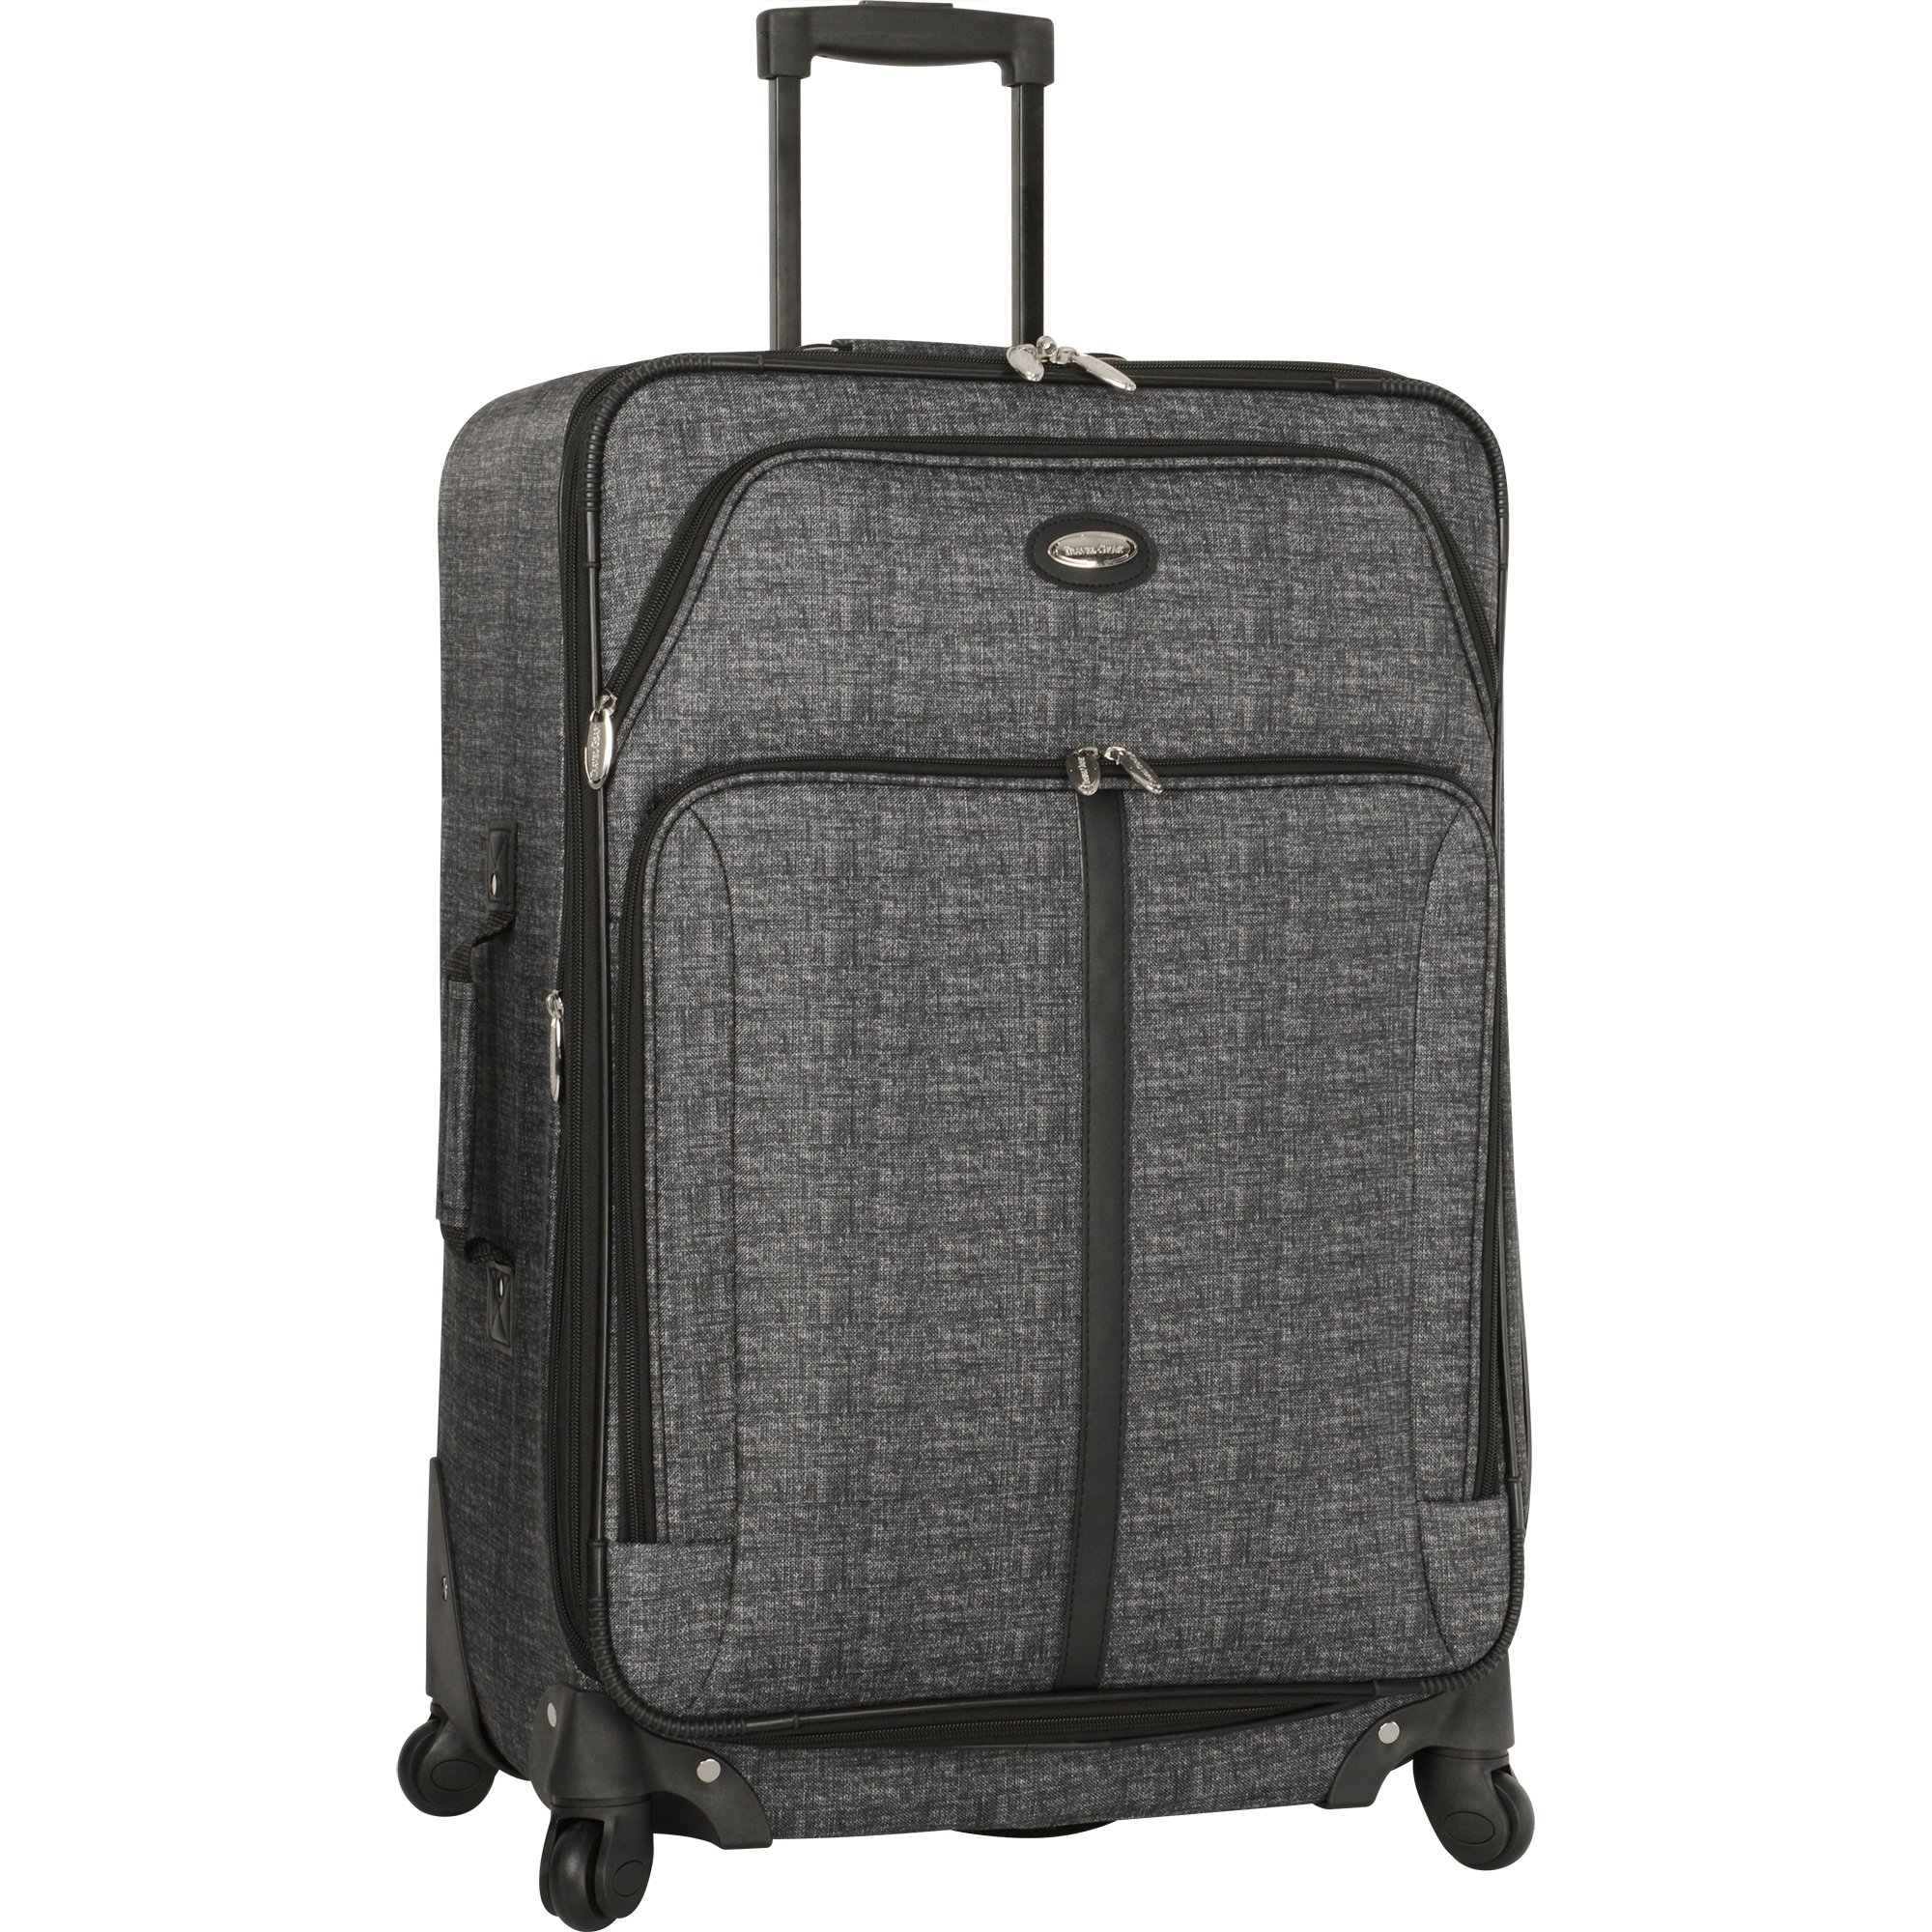 Travel Gear 29'' Expandable 4wheel Spinner Suitcase, Heather